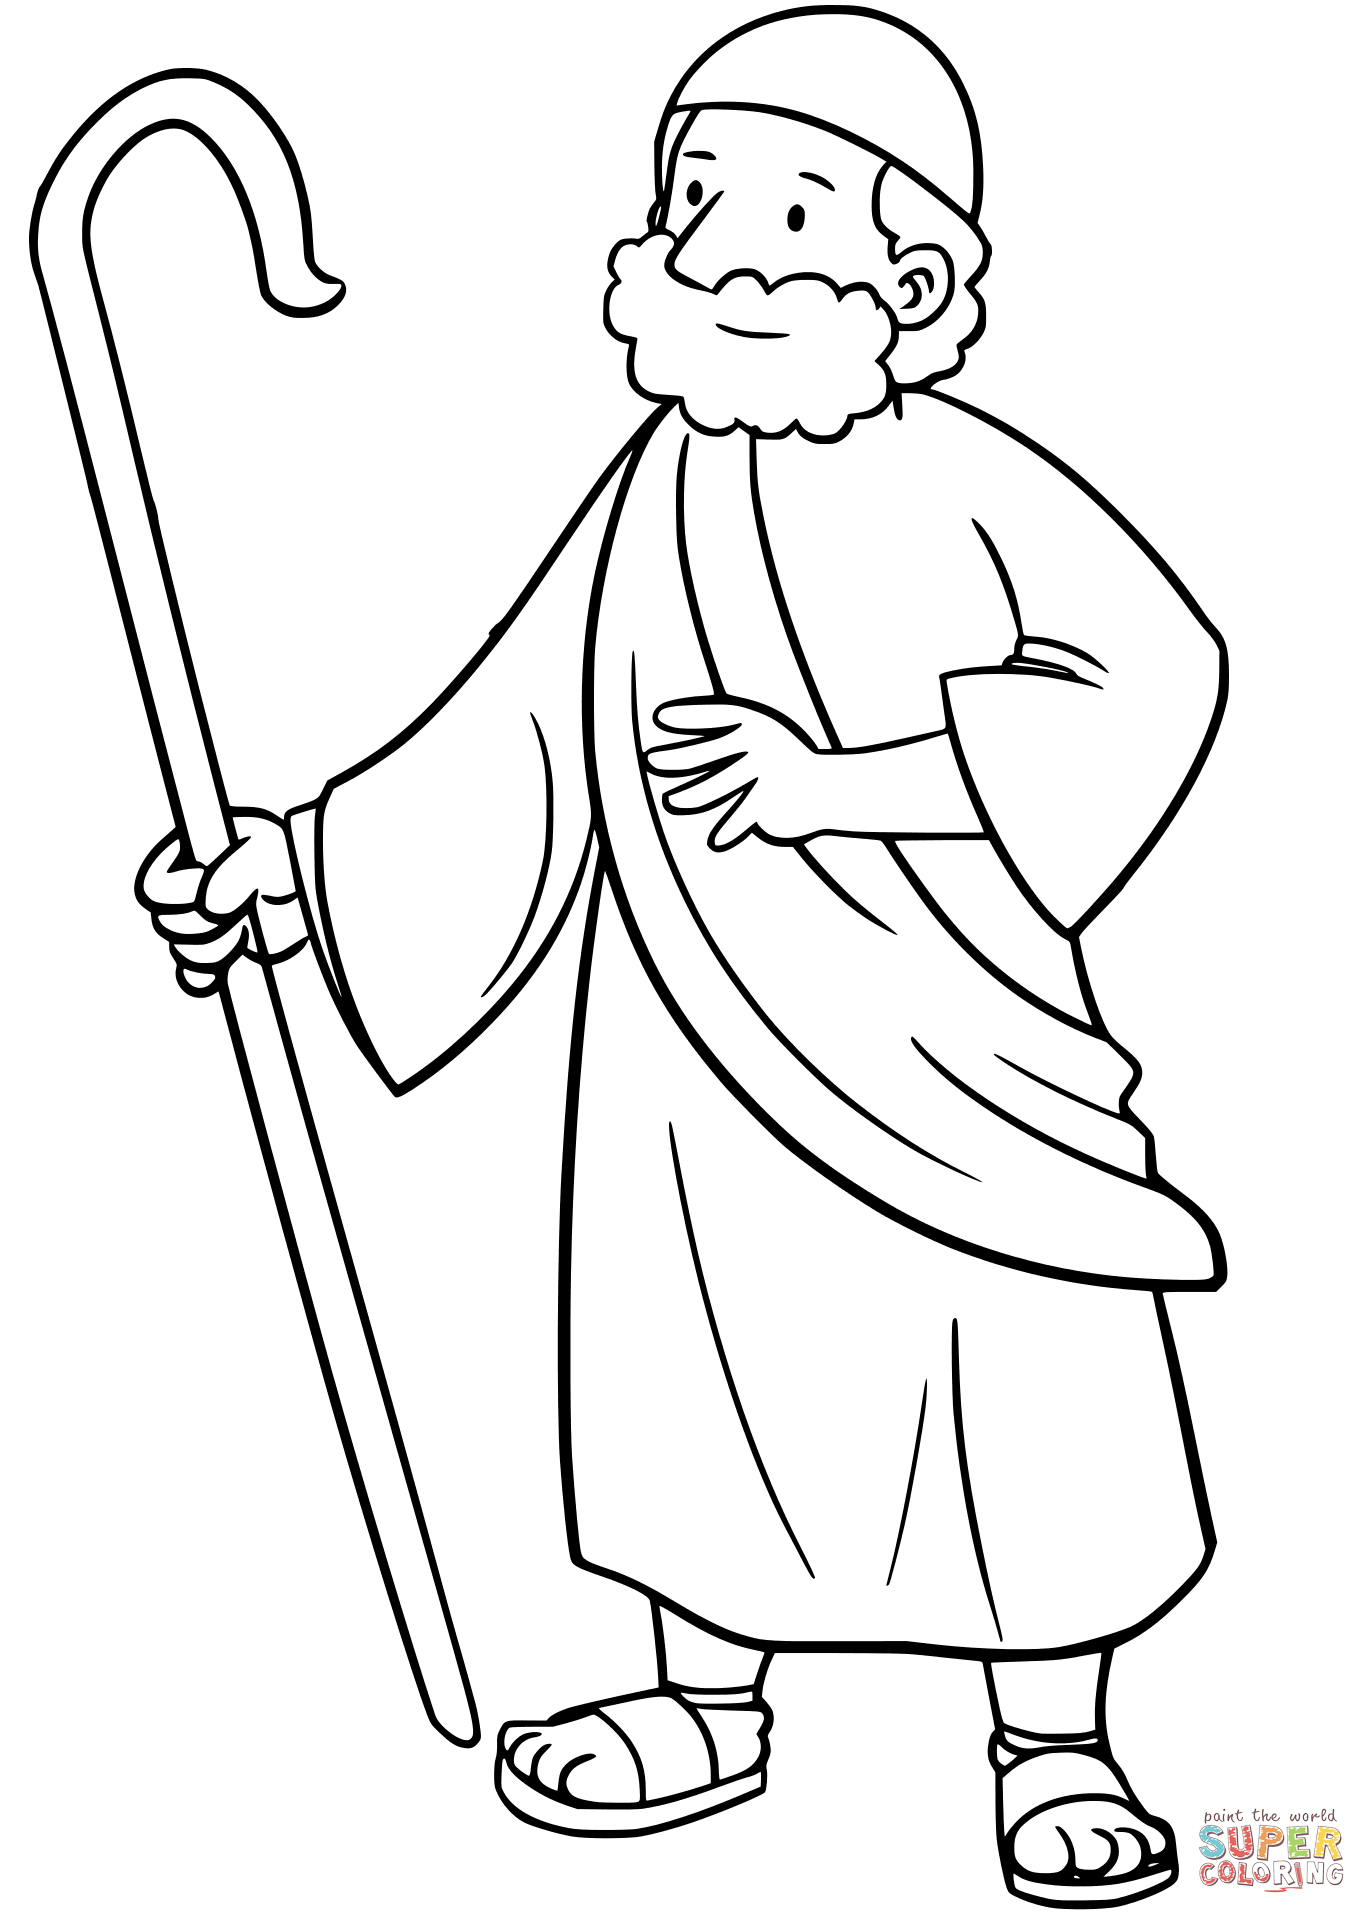 Moses Coloring Page From Moses Category Select From